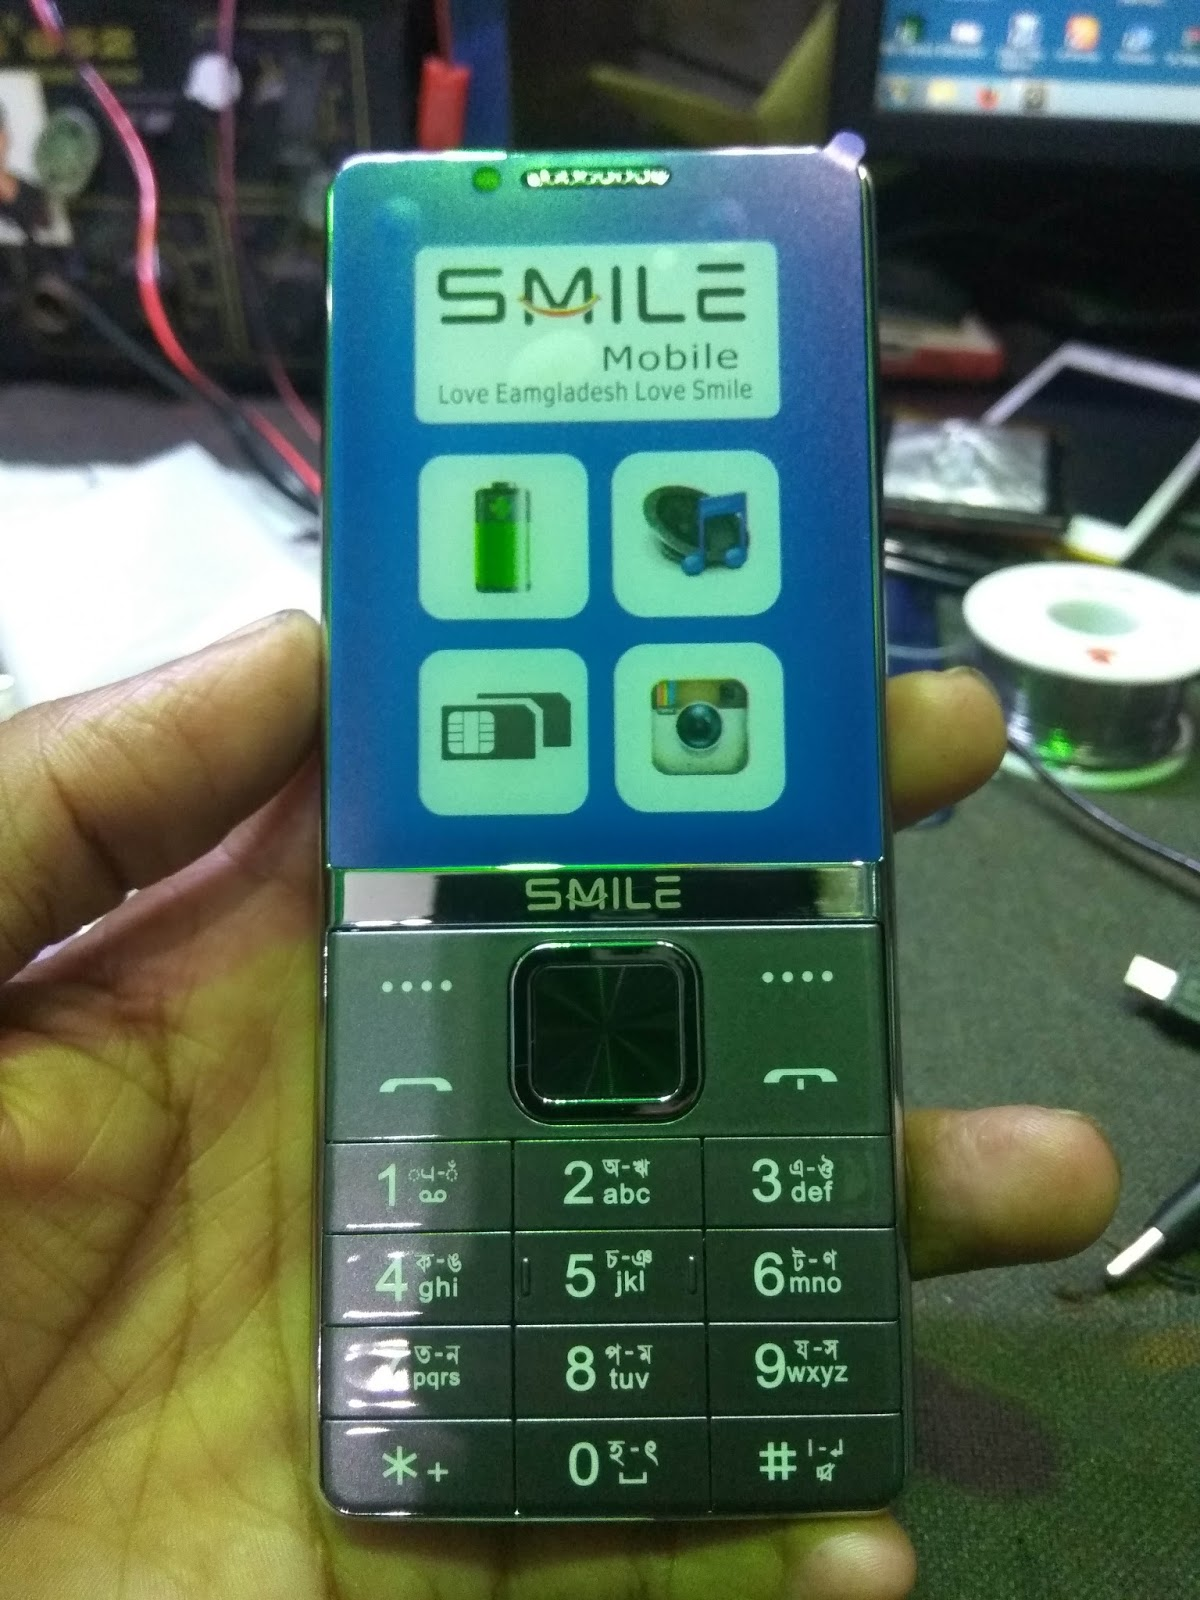 Lucky Telecom: smile y10 mt6261 flash file 100% tested